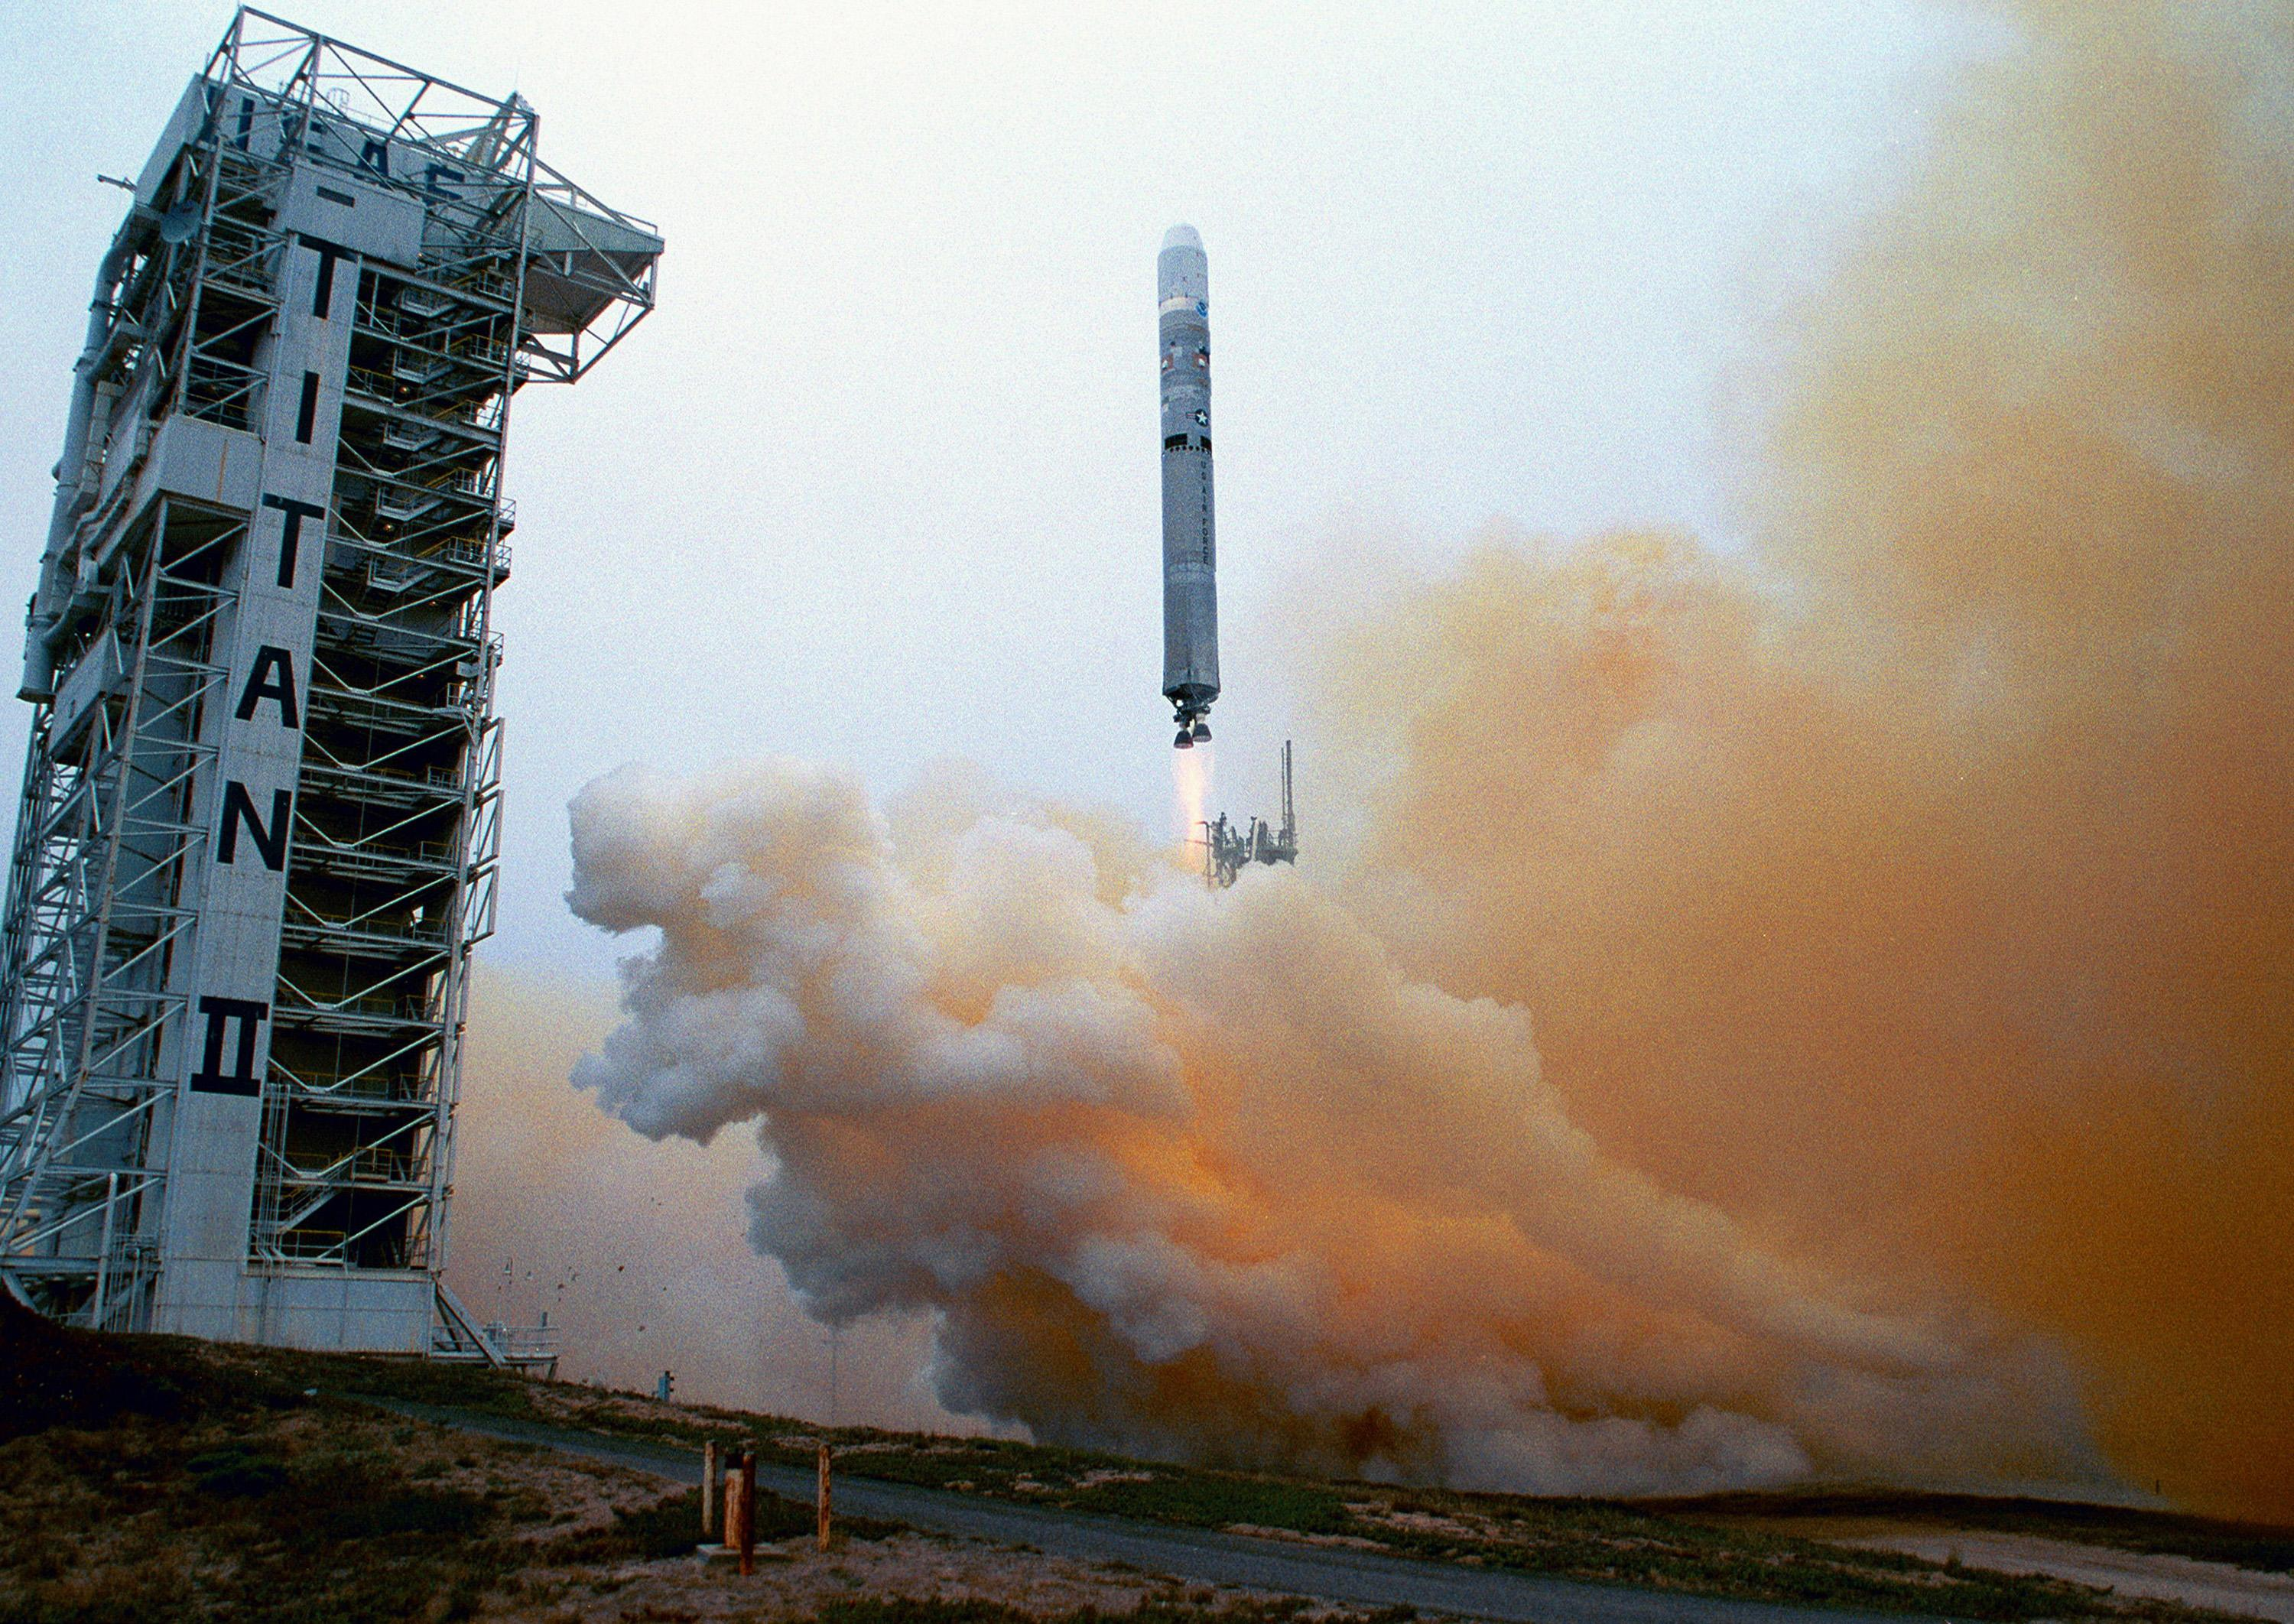 Titan 23G rocket hurtles above the launch tower